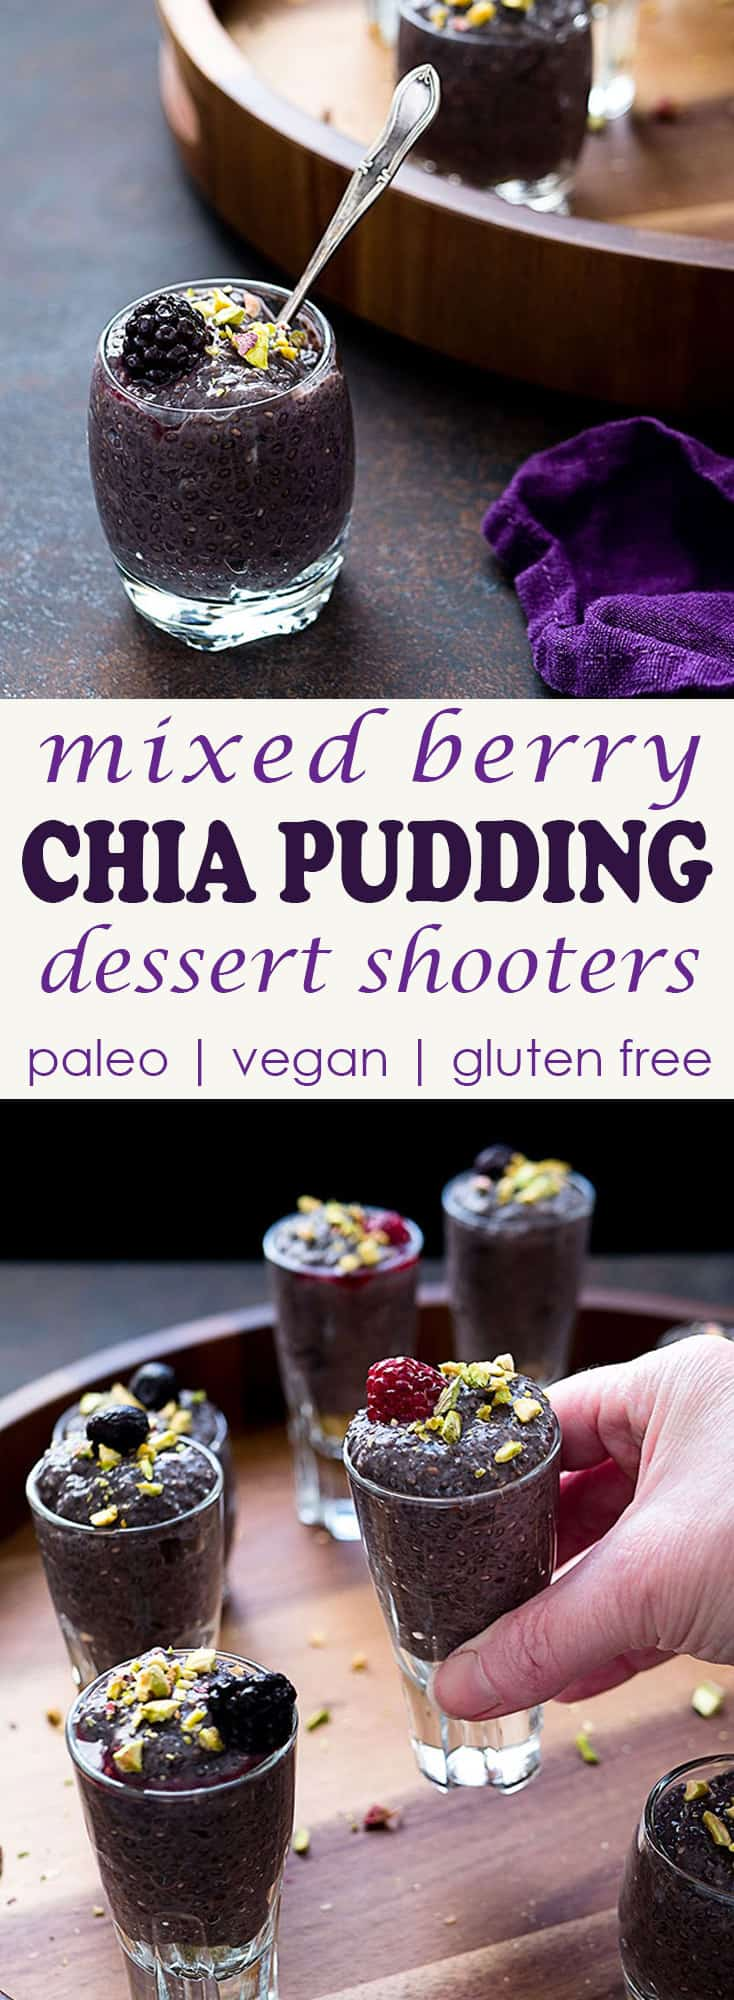 These paleo Berry Chia Pudding Dessert Shooters will feed your festive spirit AND keep your #healthgoals on track.  | Take Two Tapas | #shooter #healthydessert #dessert #paleo